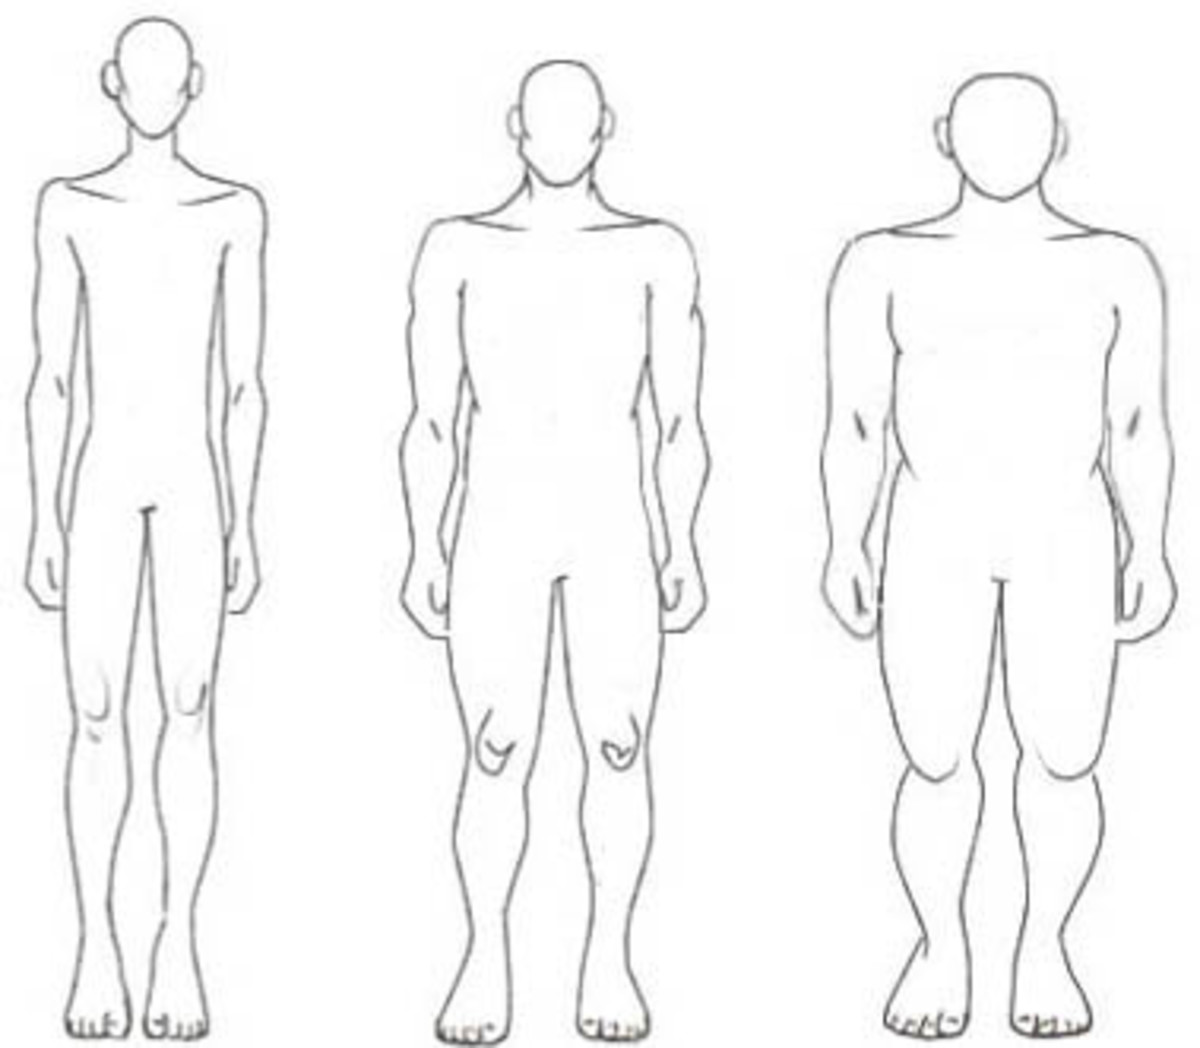 From left to right: Ectomorph, Mesomorph, & Endomorph